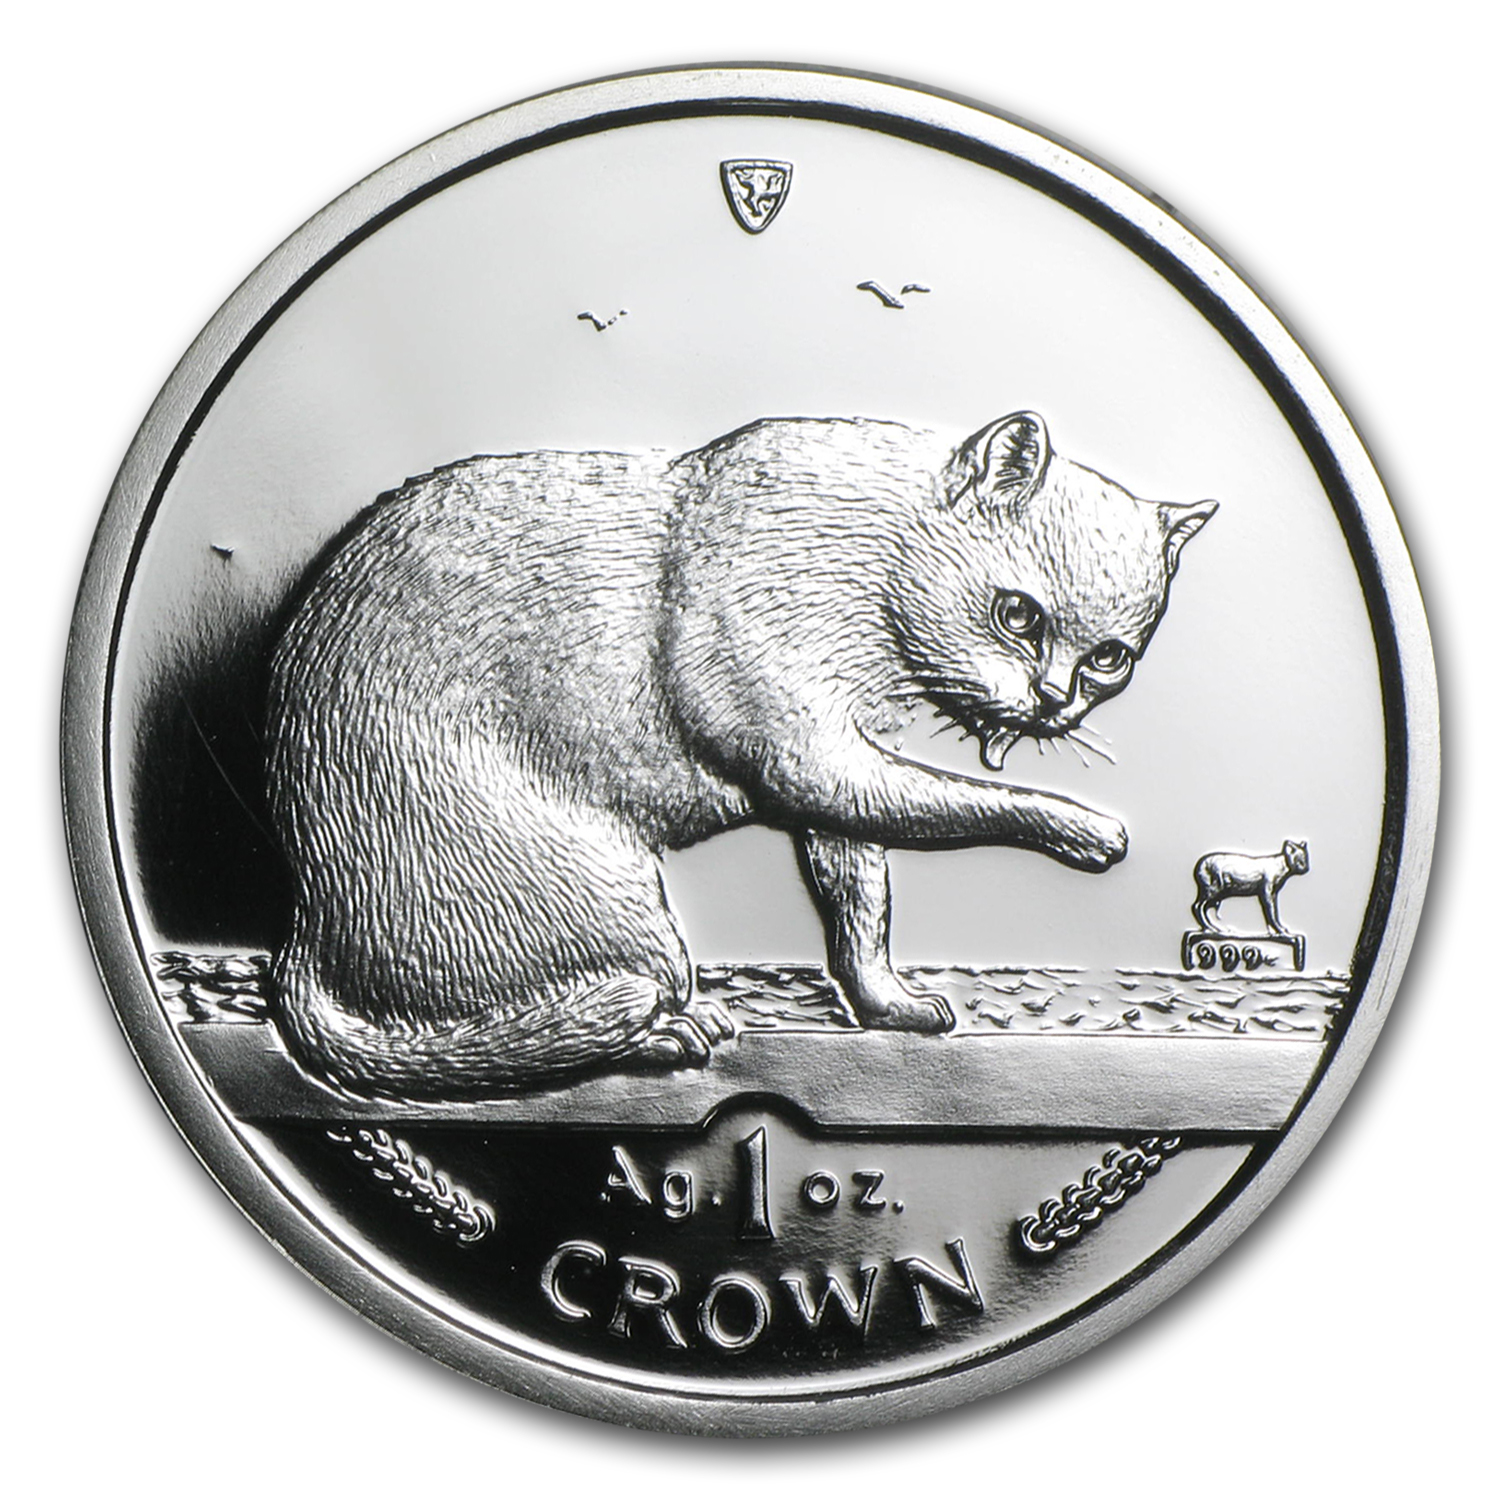 Isle of Man 1999 1 Crown Silver Proof British Blue Cat